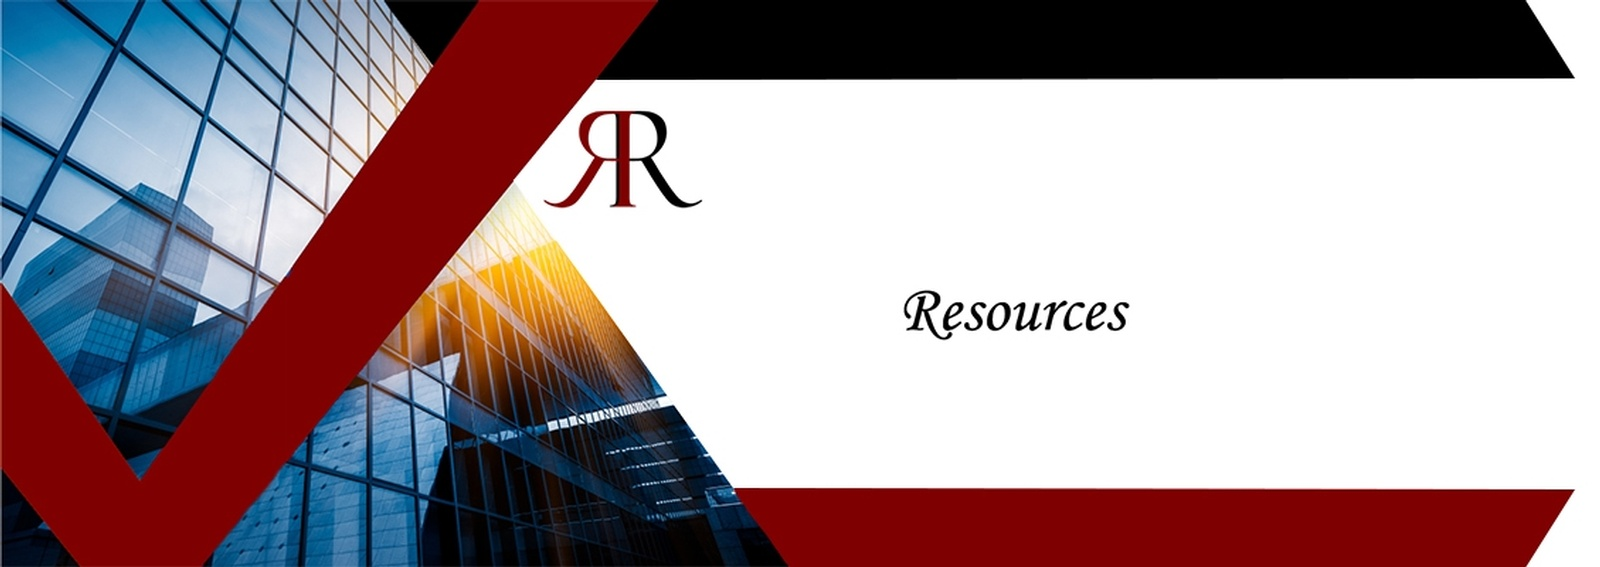 Resources | Rati Raithatha CPA Professional Corporation